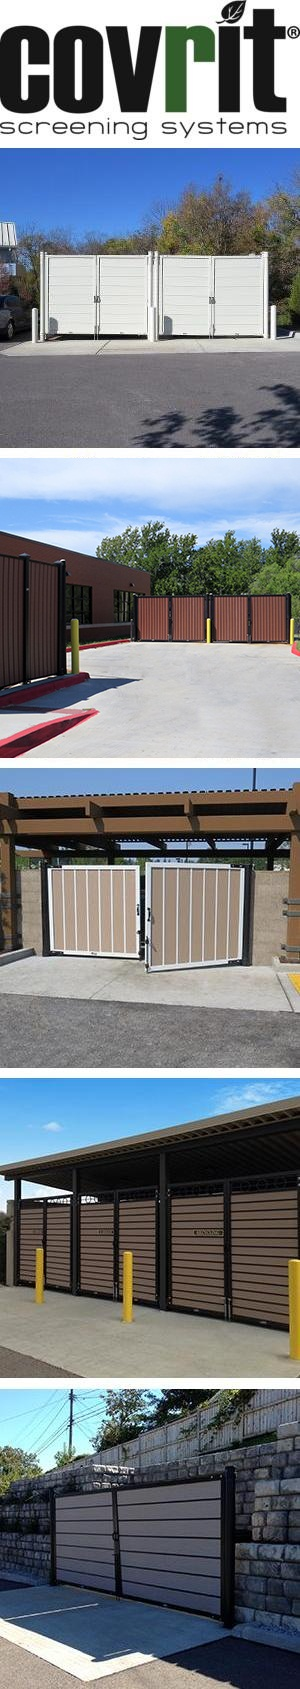 Covrit® Ground Mounted Screening System